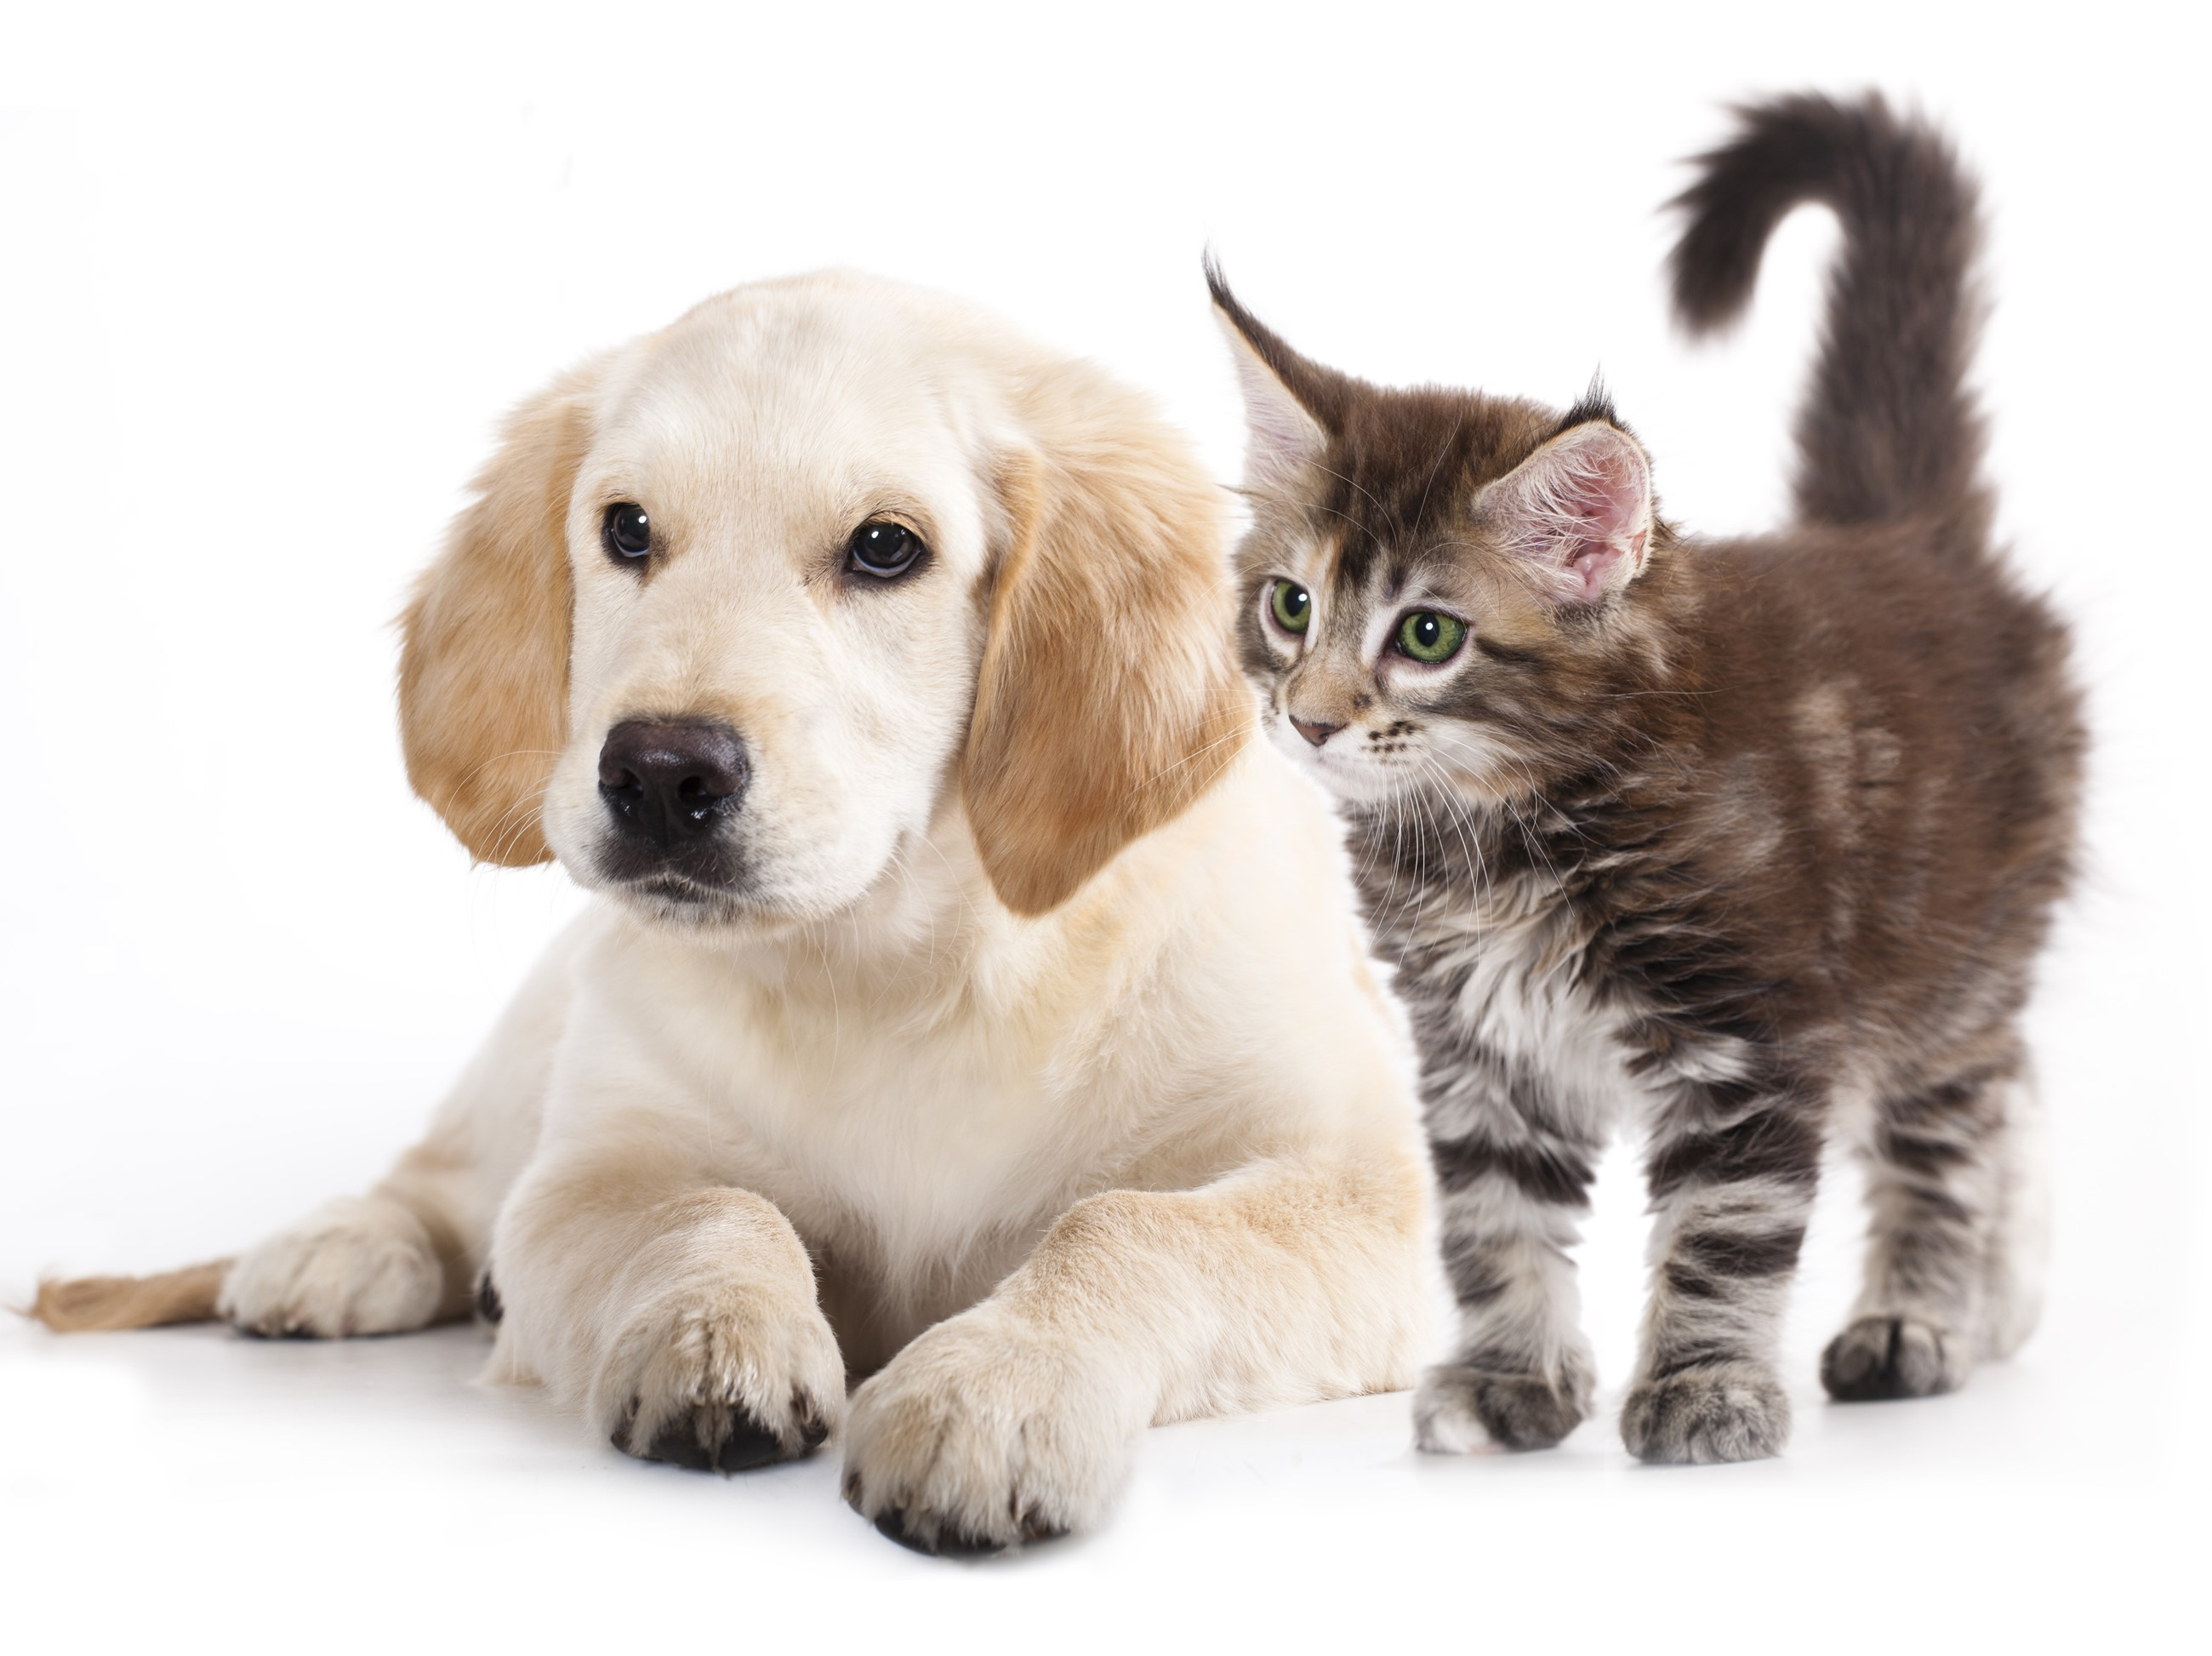 Photo of a puppy and a kitten